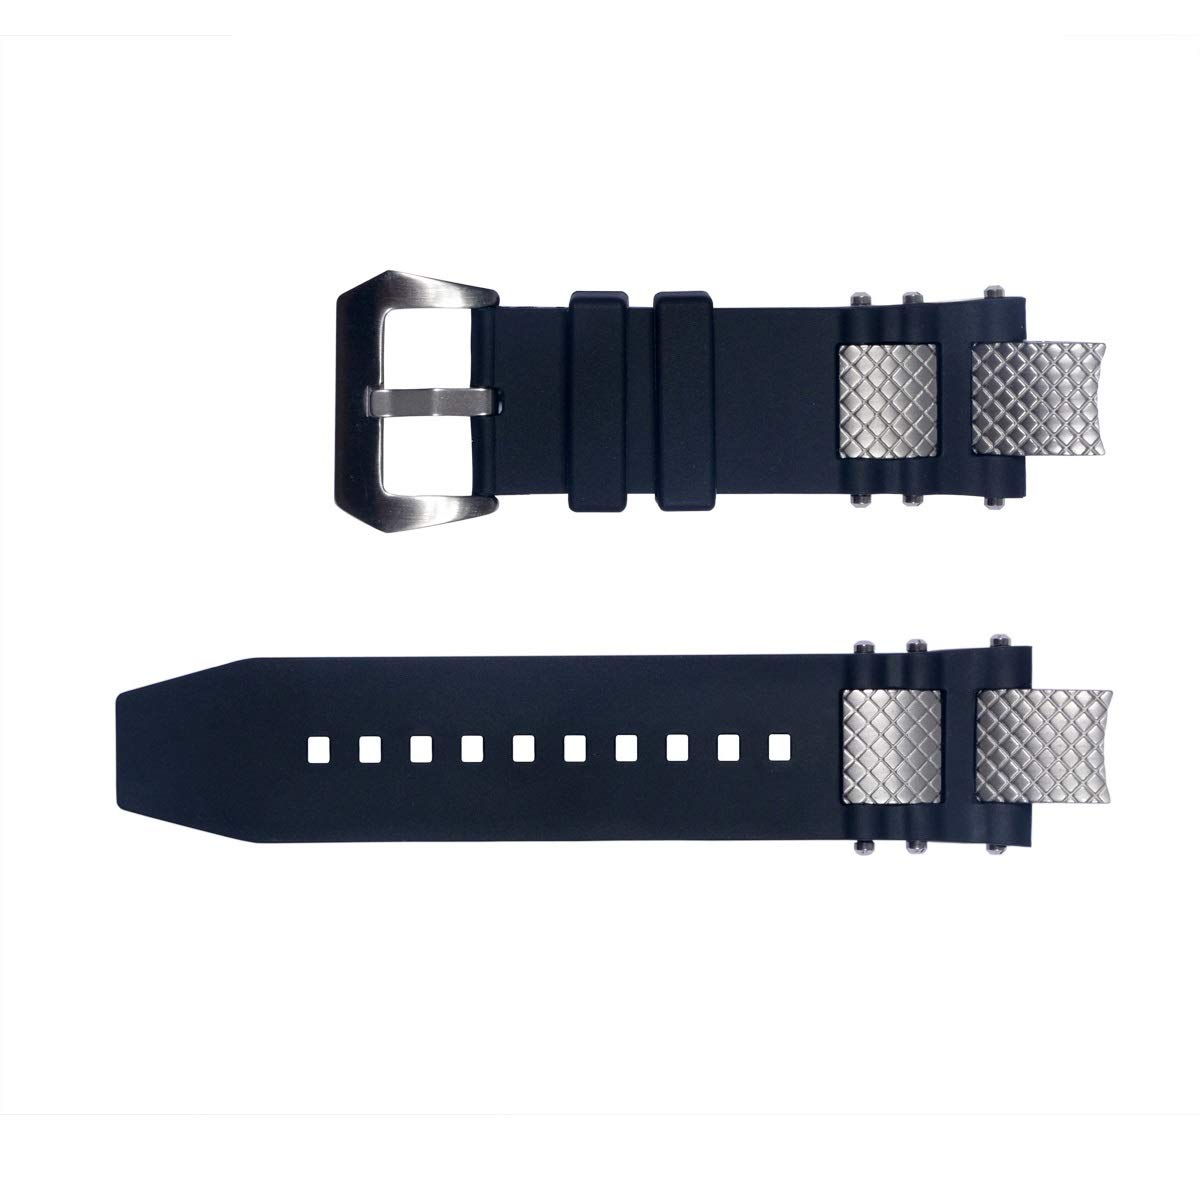 Vicdason for Invicta Subaqua Noma III Watch Bands Replacement Strap with Bukcle Metal Inserts - Black Rubber Silicone Invicta Watch Strap by Vicdason